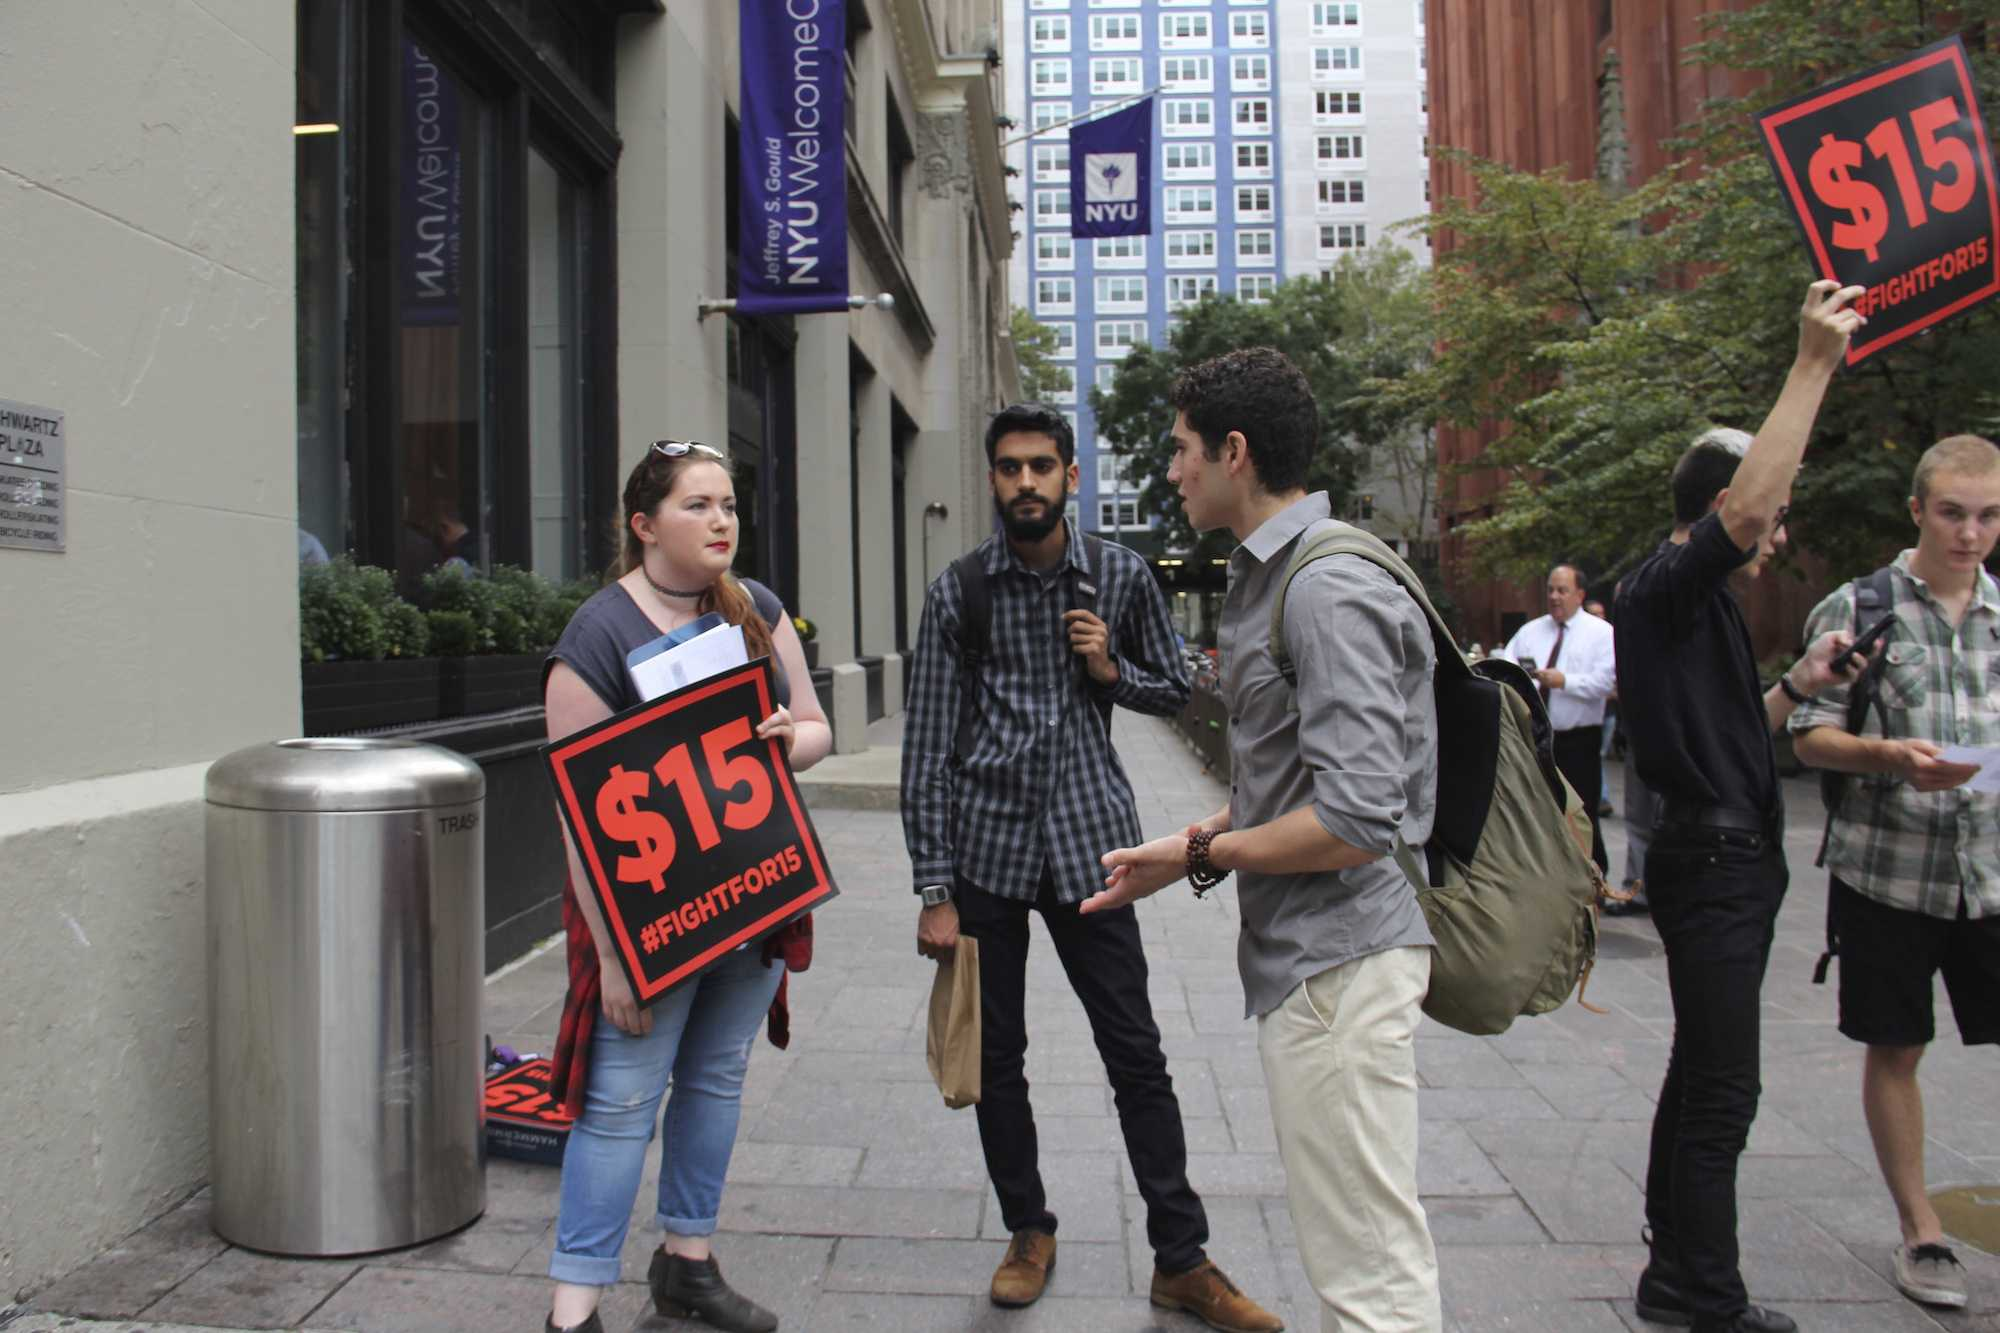 Haley Quinn (left) and Vishnu Bachani (center) of NYU's Student Labor Action Movement speak to prospective student Elliot Waxman (right) about raising student worker pay to $15 an hour in front of the NYU Welcome Center on Friday, Oct. 9, 2015.